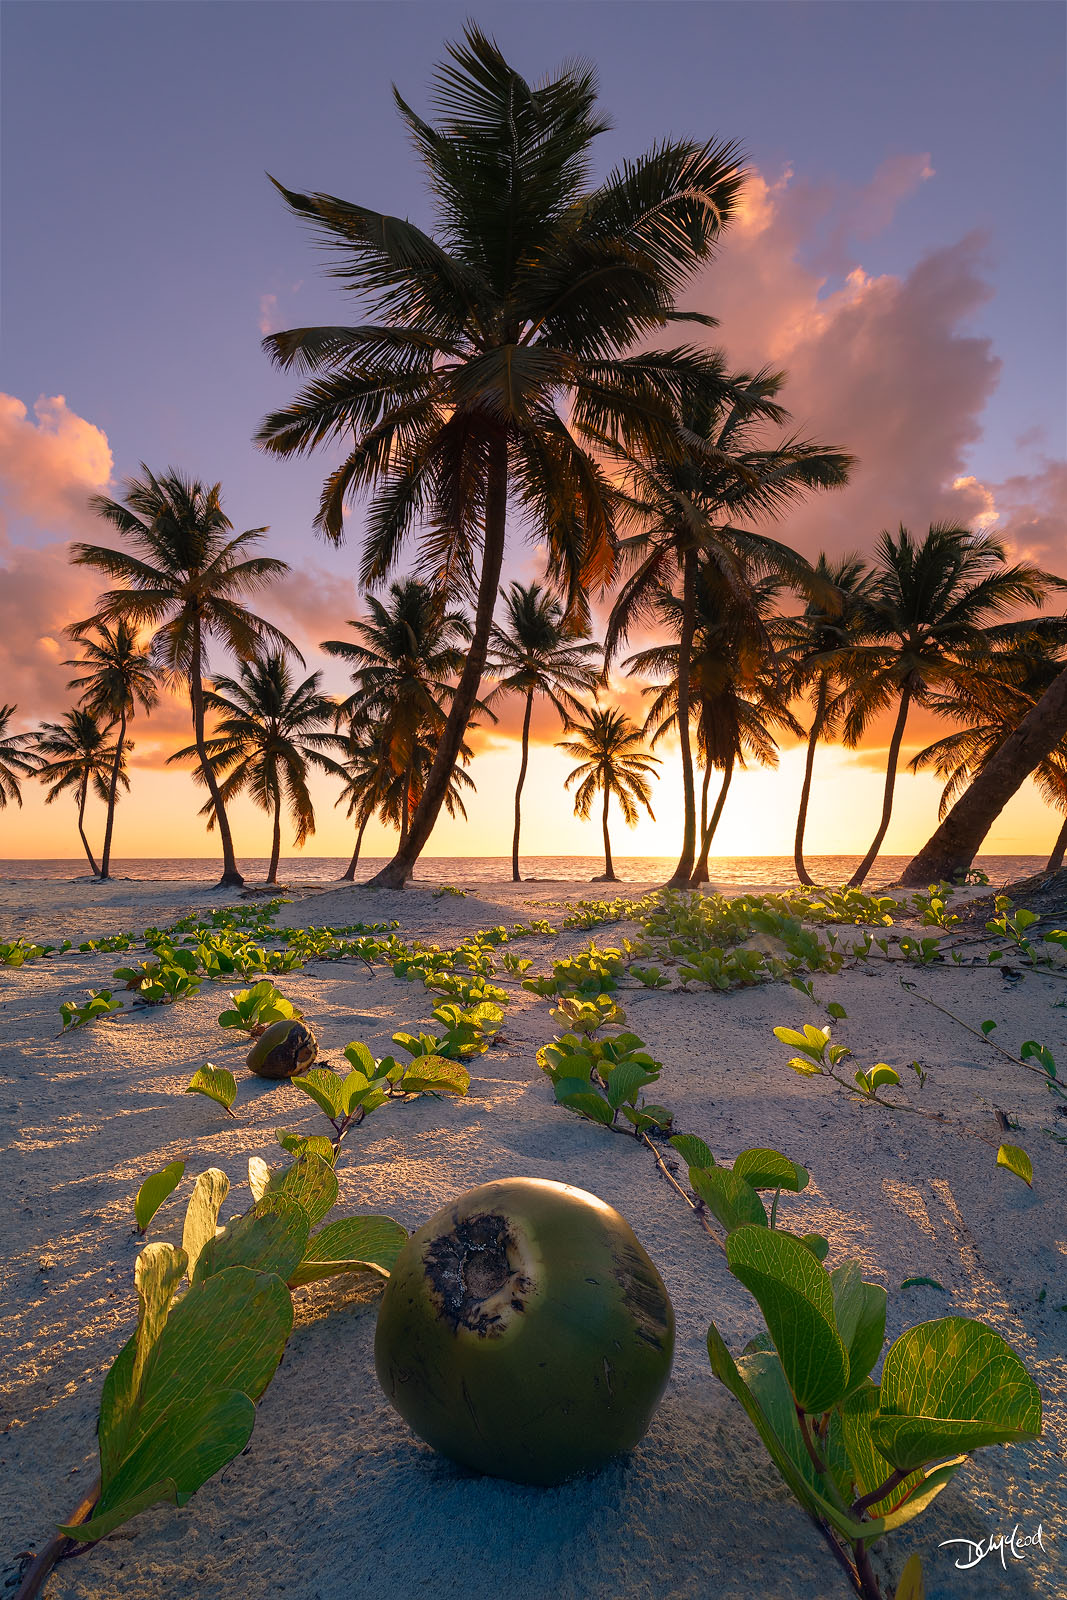 A coconut in the sand amongst green vines and palm trees during a bright sunrise in Punta Cana, Dominican Republic.